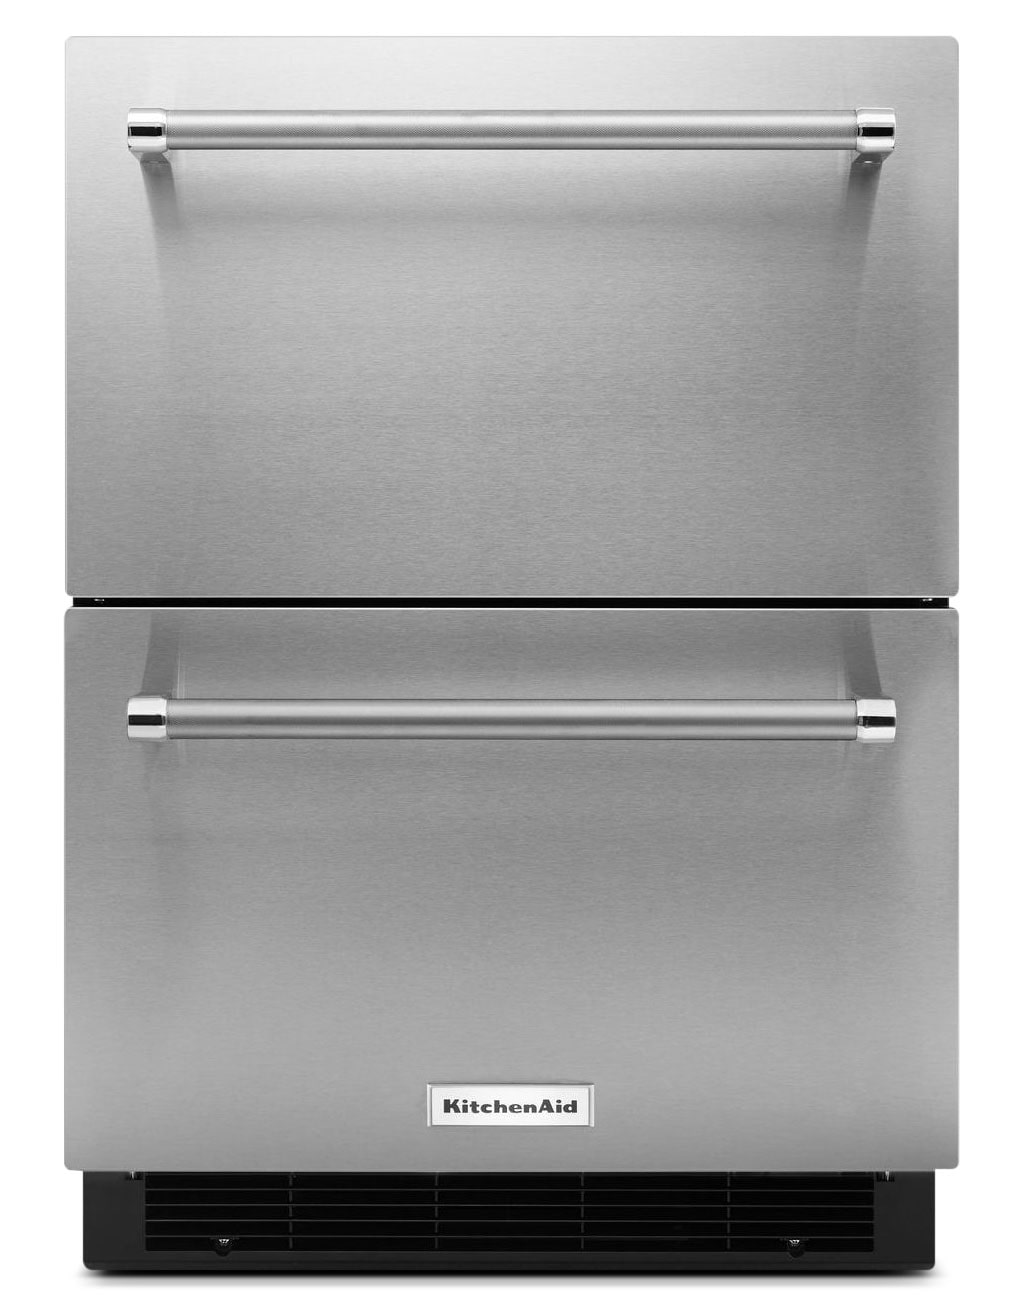 Refrigerators and Freezers - KitchenAid Undercounter Refrigerator KUDR204ESB